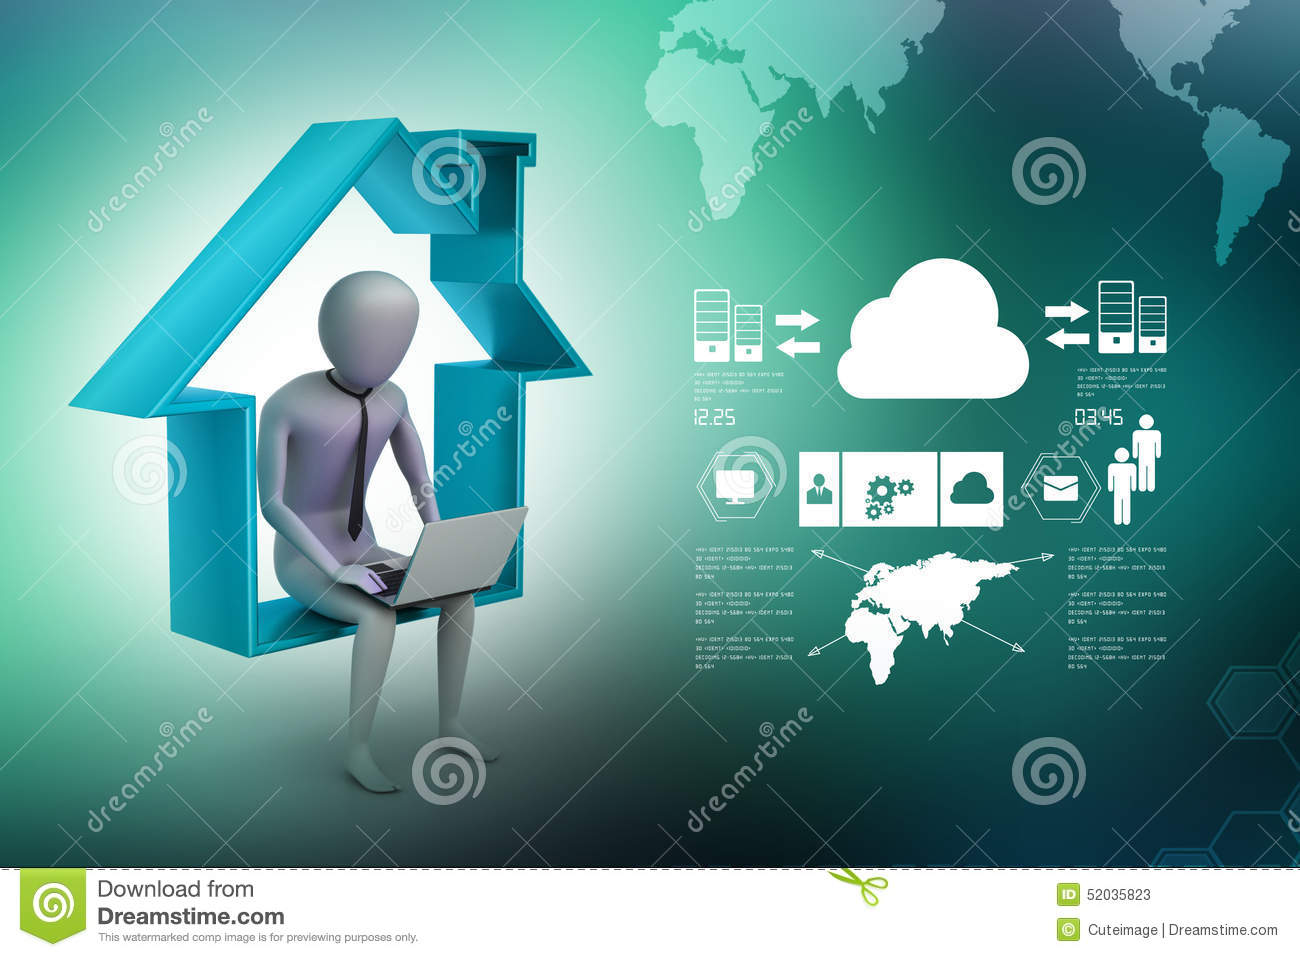 100 graphic design works from home 147 best work from home tips images on pinterest - Web design work from home ...